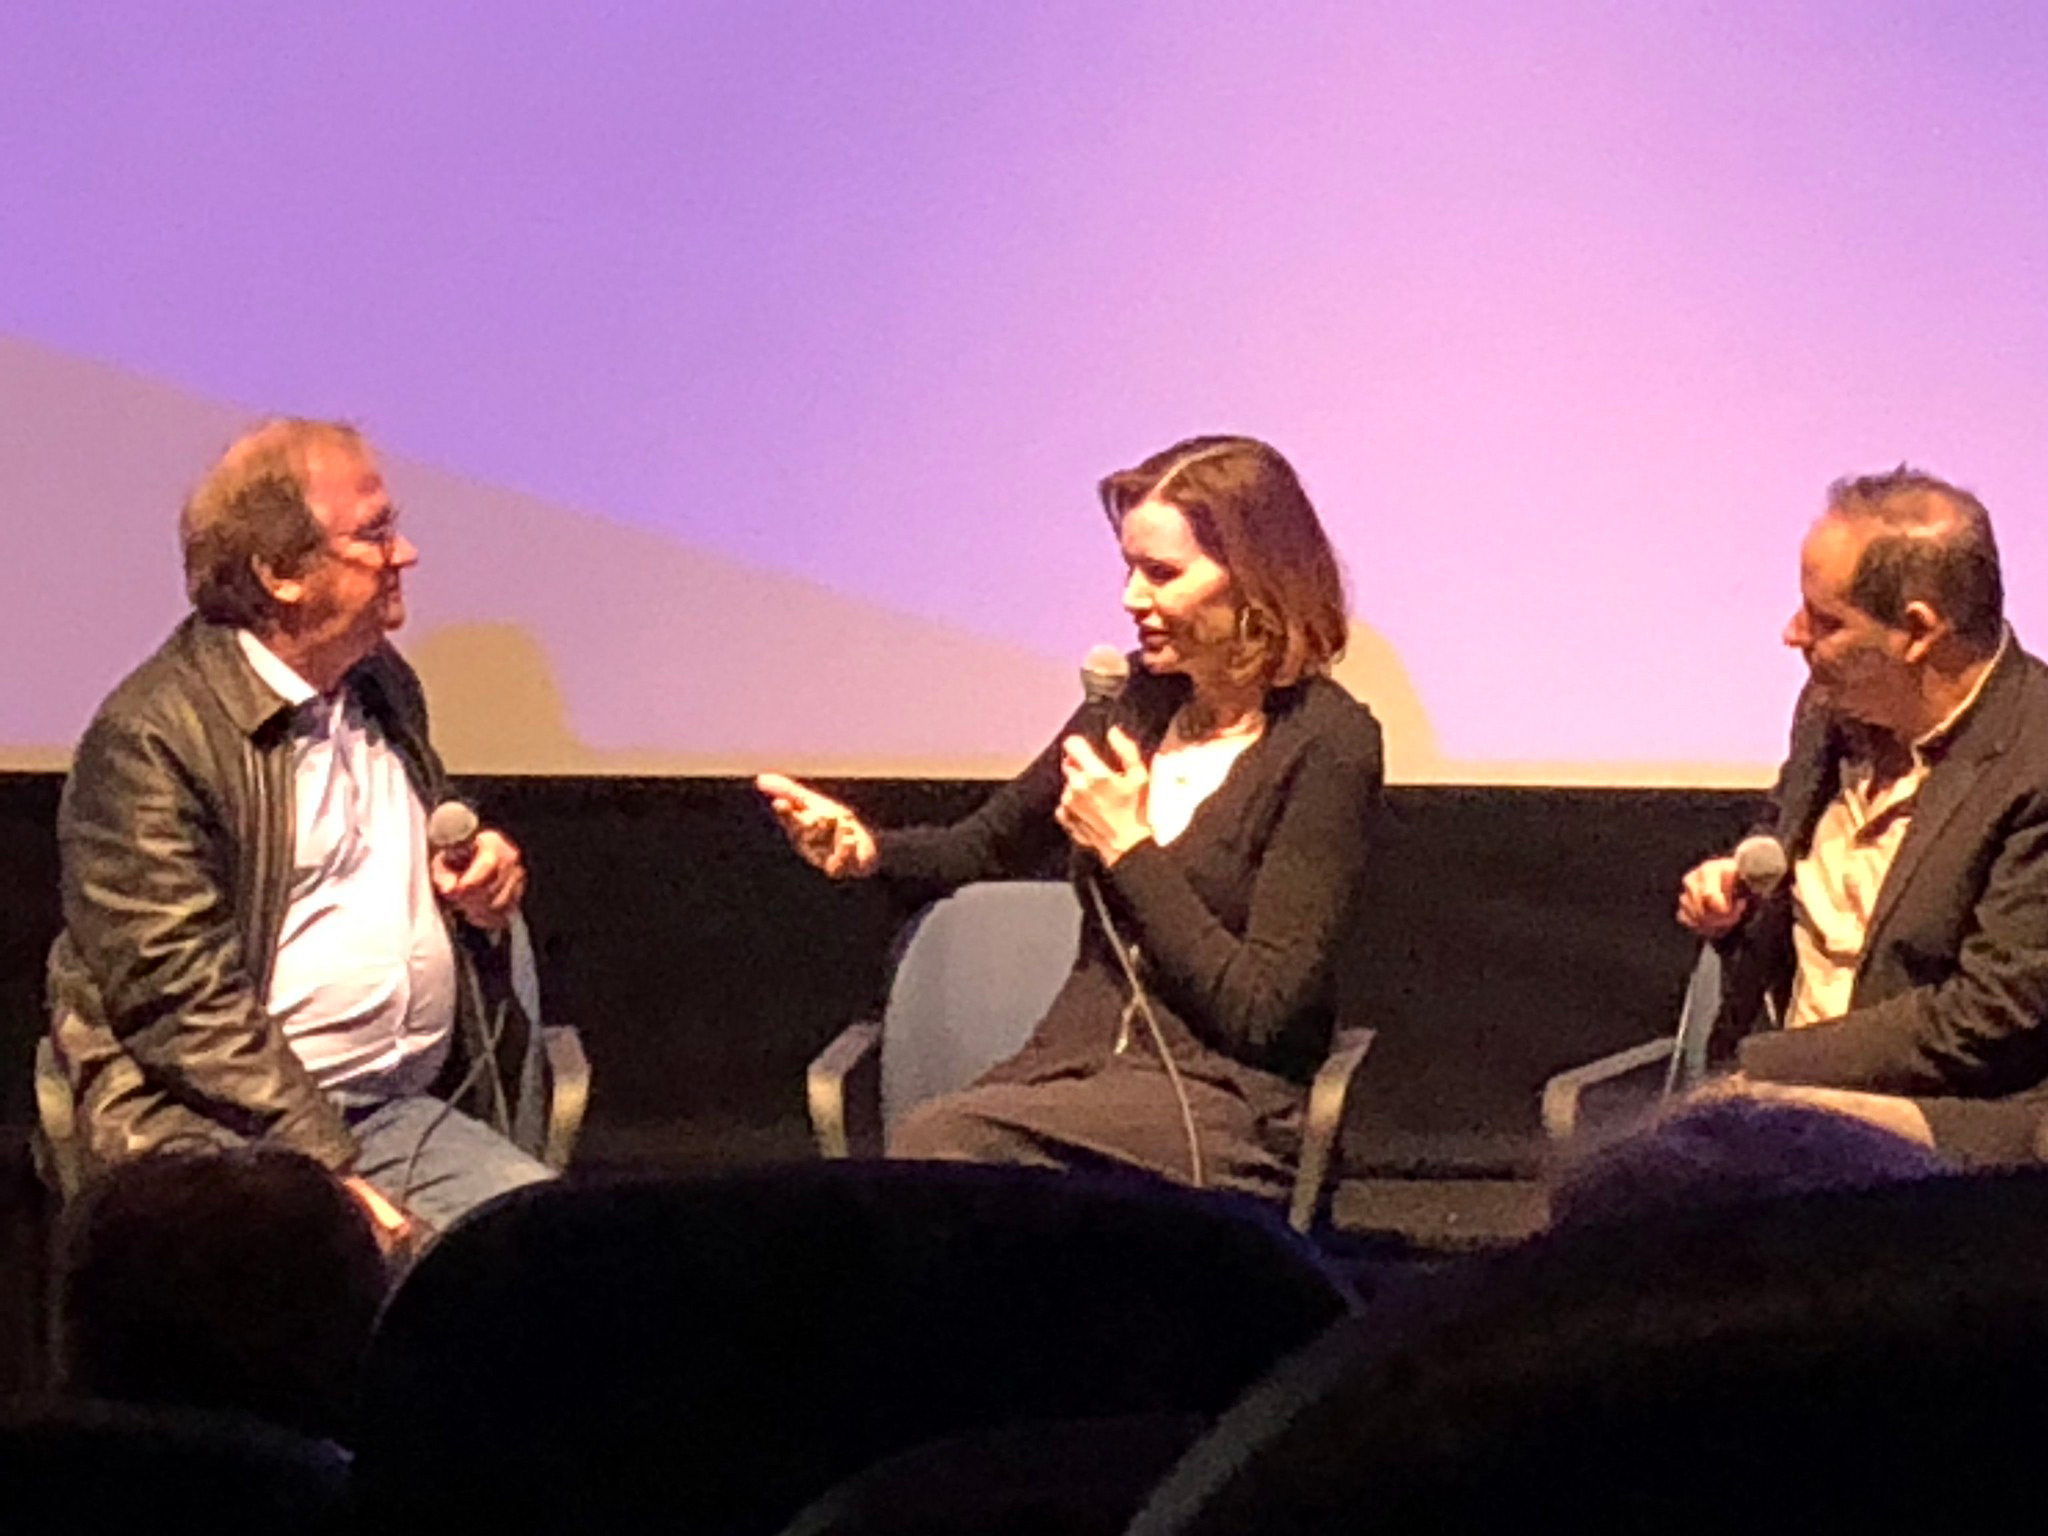 """Cinema Series host Pete Hammond, Actor/Executive Producer Geena Davis and Director Tom Donahue participate in a Q&A after a screening of """"This Changes Everything"""""""